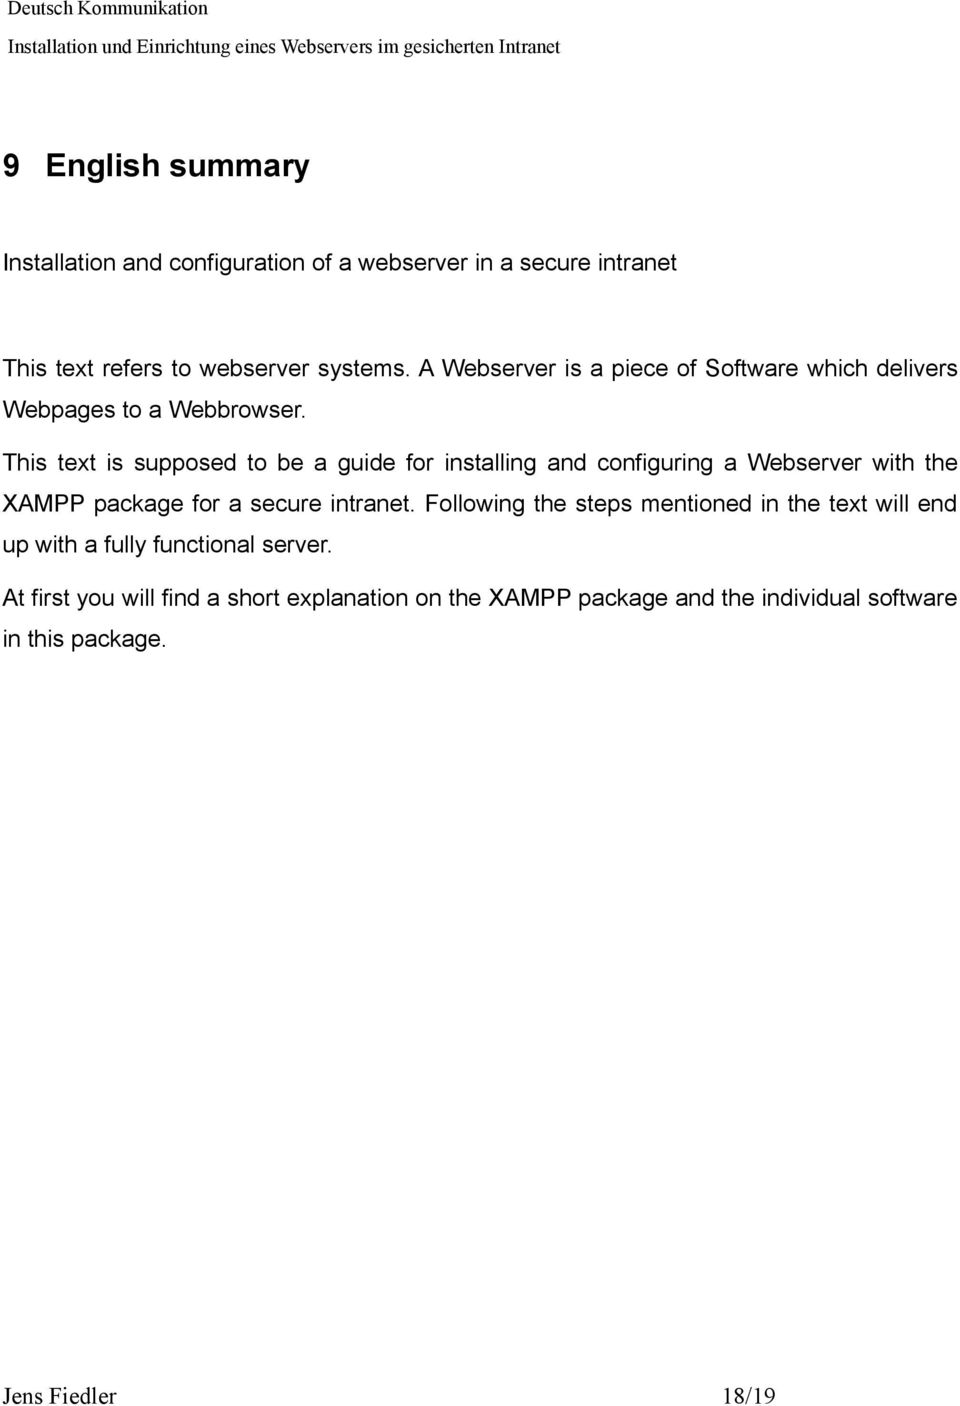 This text is supposed to be a guide for installing and configuring a Webserver with the XAMPP package for a secure intranet.